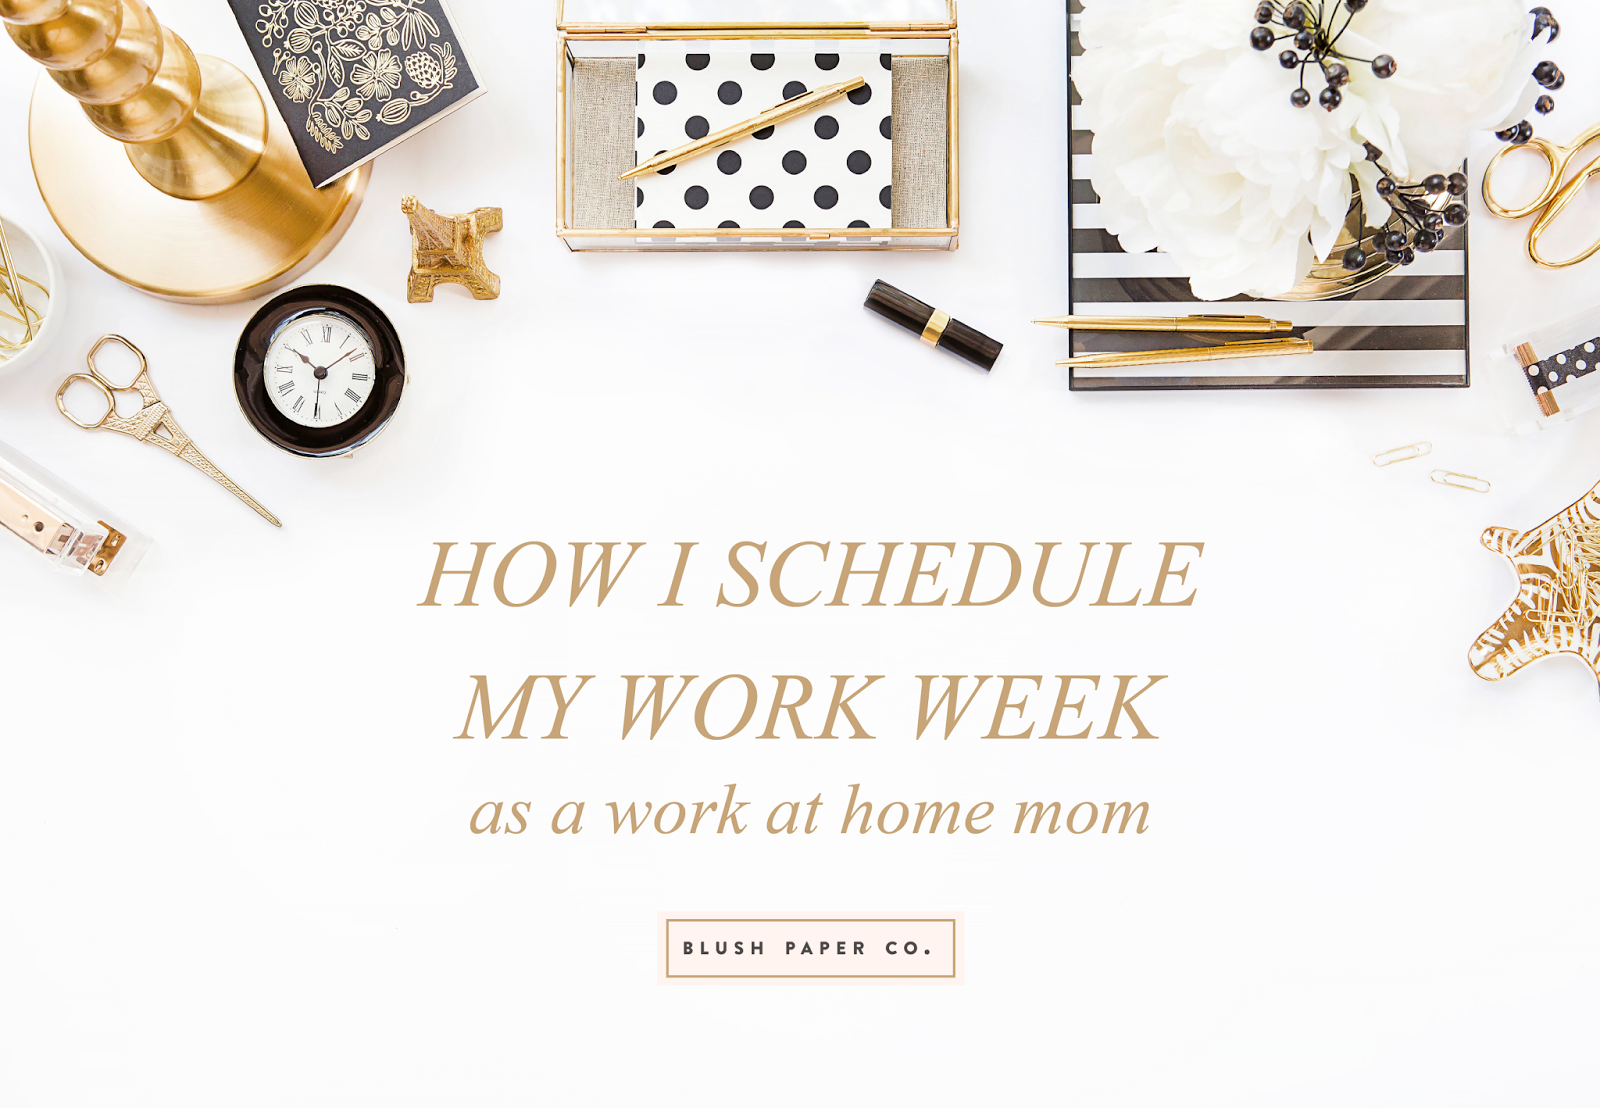 how i schedule my work week - Pittsburgh Luxury Wedding Invitations ...